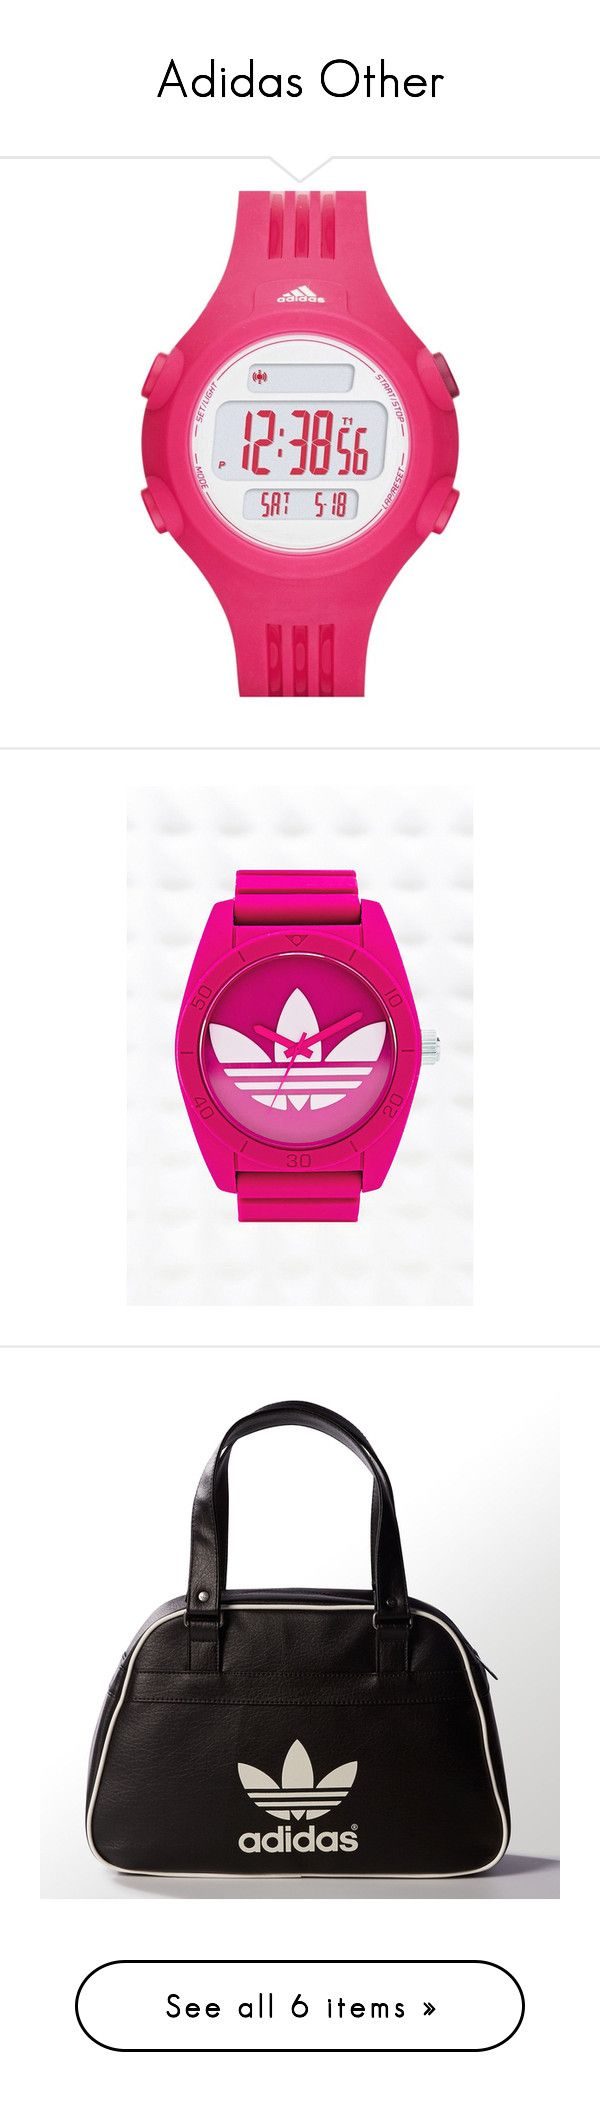 """Adidas Other"" by alyssa-perry ❤ liked on Polyvore featuring jewelry, watches, digital watch, adidas watches, adidas, sporty watches, schmuck, pink, chunky jewelry and womens jewellery"